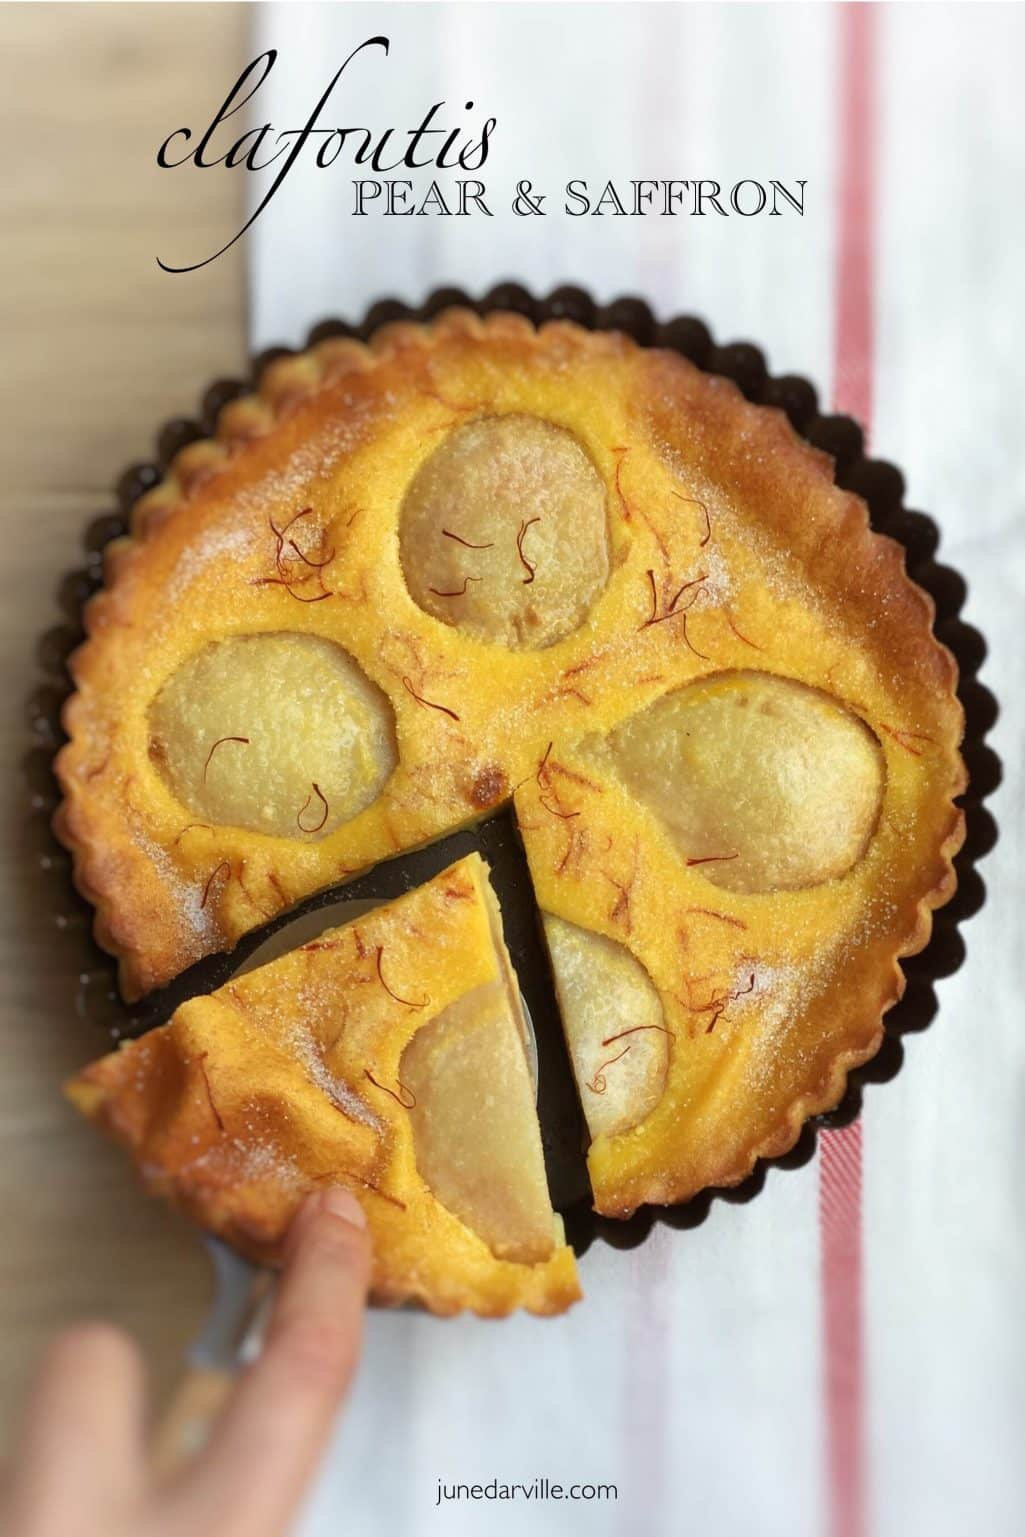 Lukewarm pear clafoutis with a hint of saffron... what a great autumn dessert! Pears and saffron, quite a surprising match!